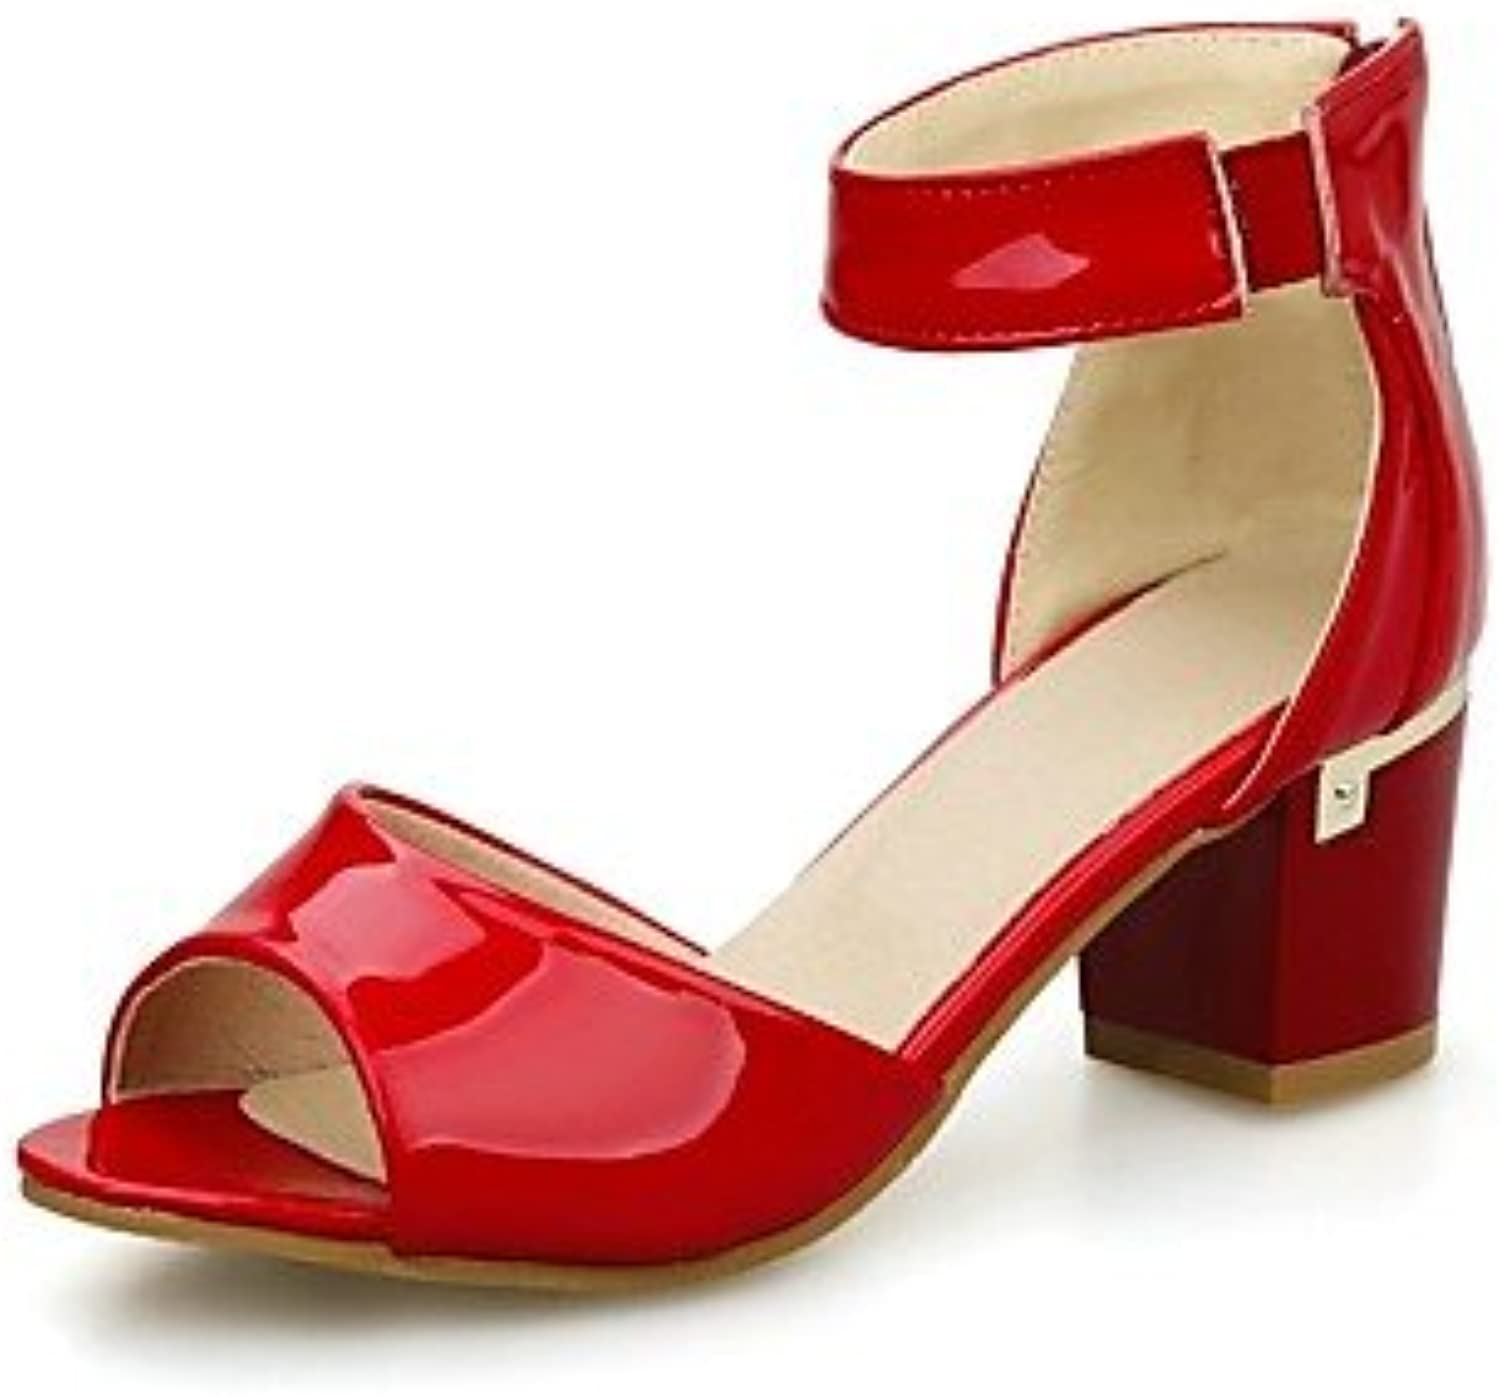 MEIREN Women's shoes Patent Leather Chunky Heel Peep Toe Ankle Strap Sandals Dress Black bluee Red